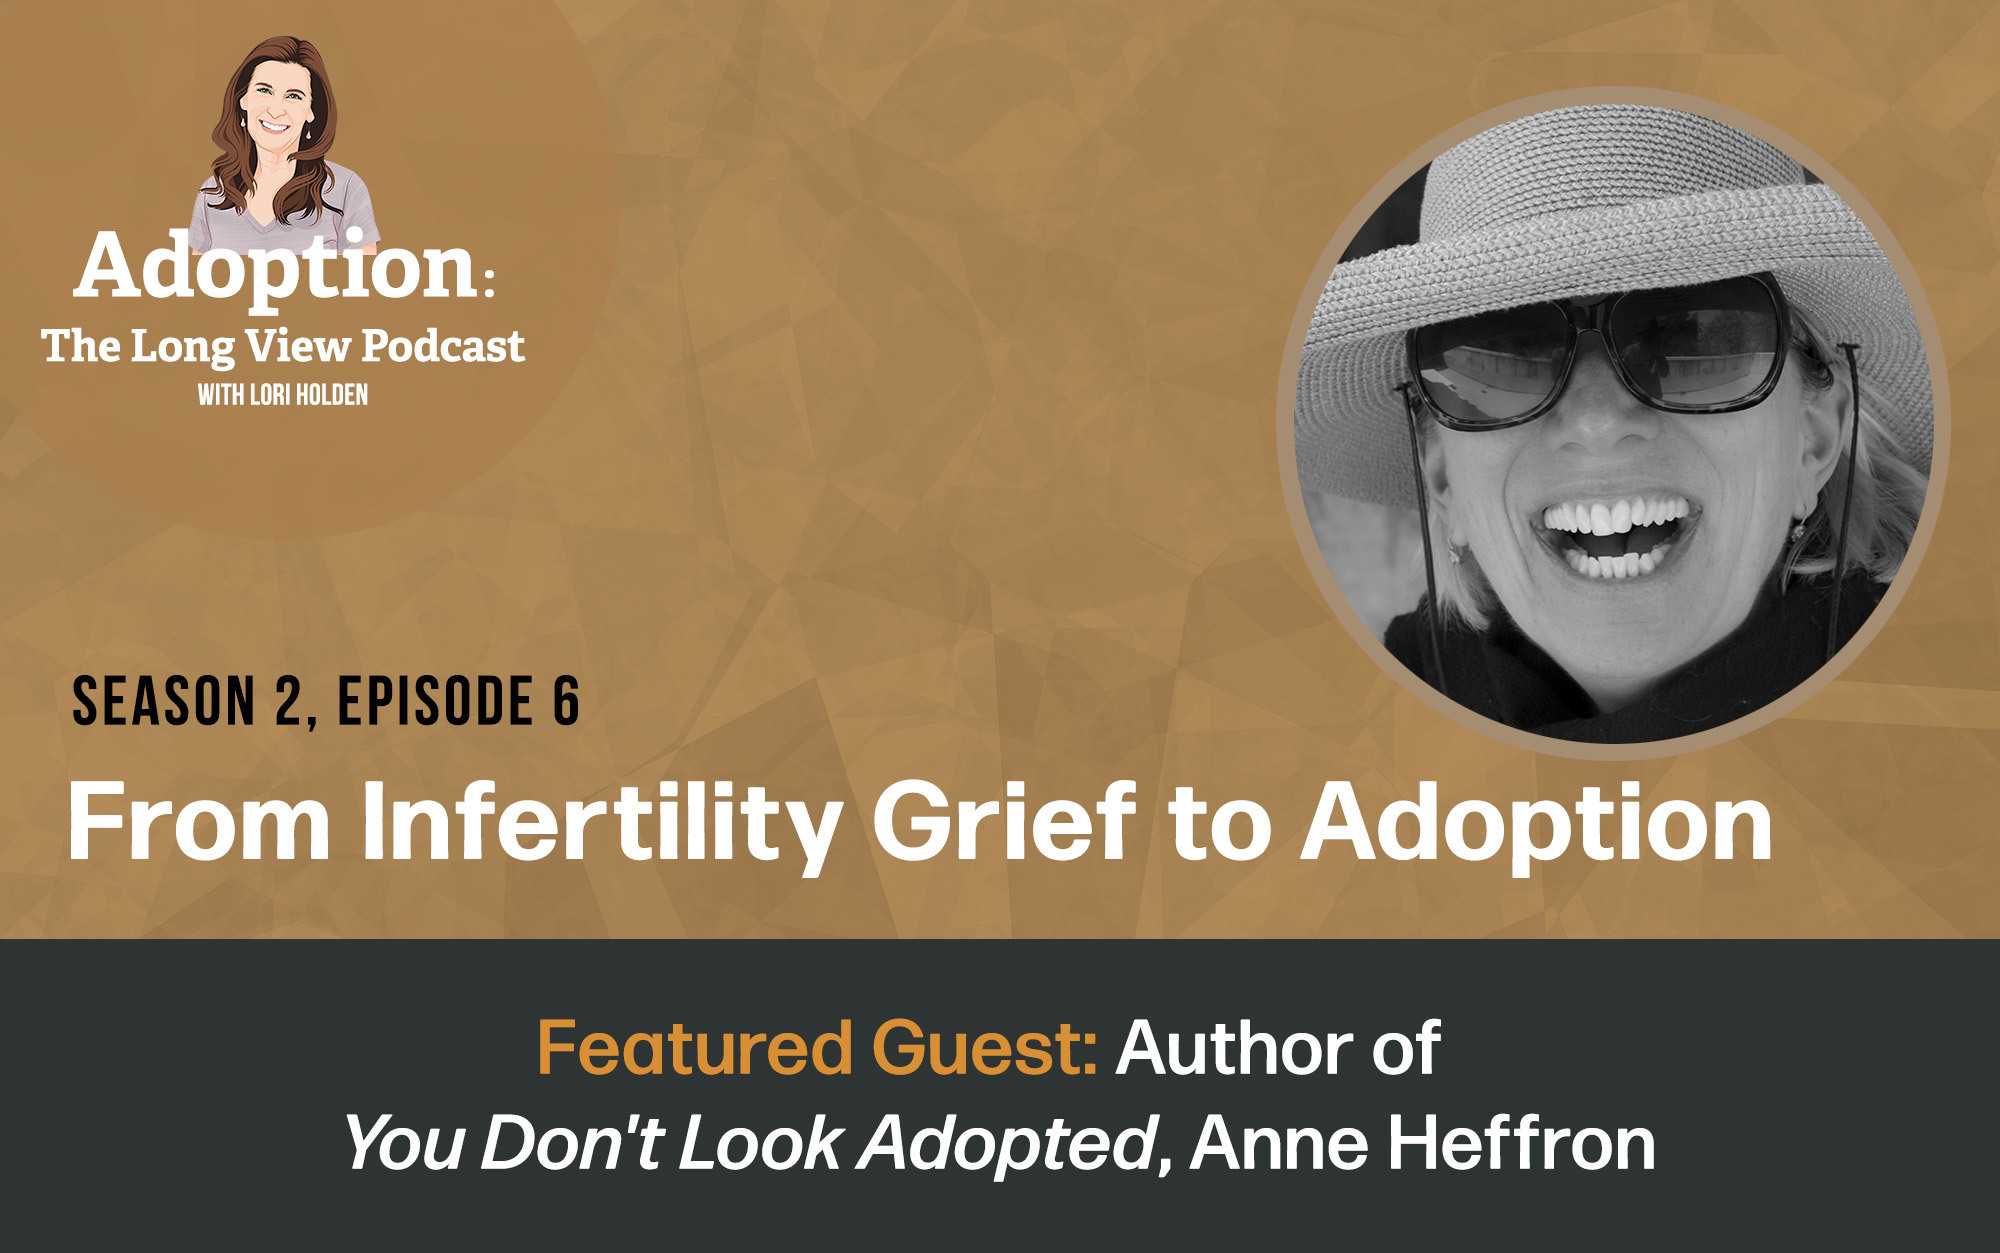 From infertility grief to adoption